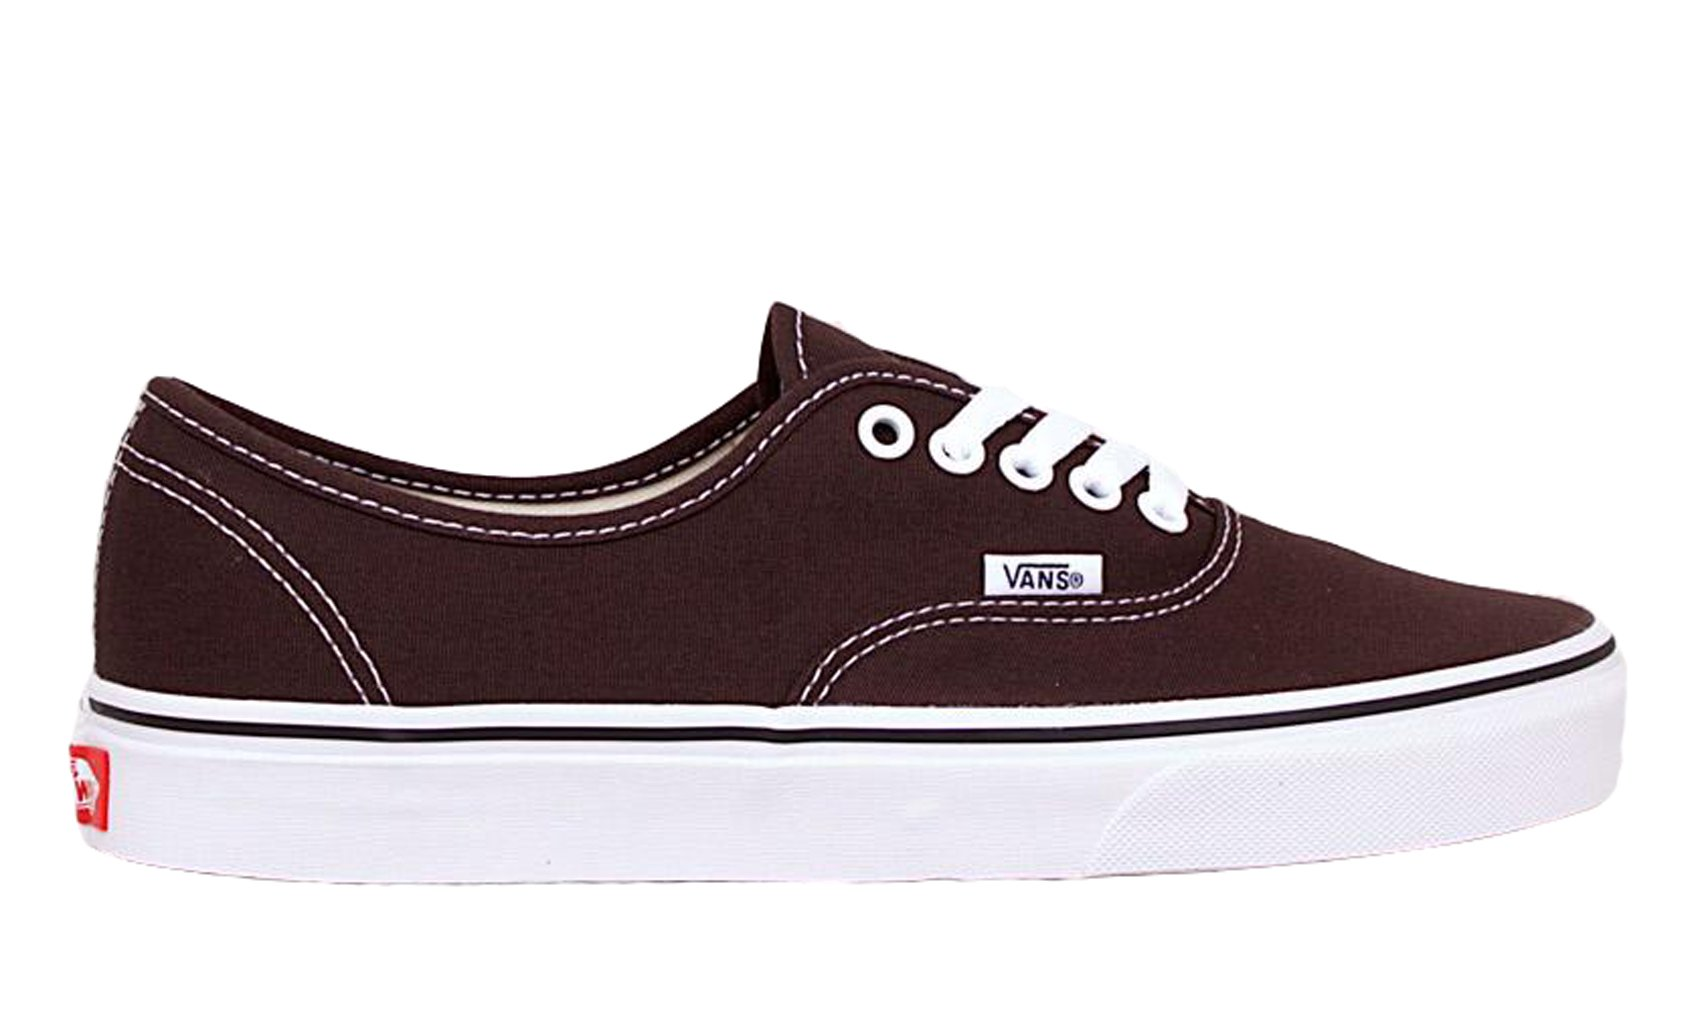 20a43a586d5ab2 Galleon - Vans Authentic Chocolate Torte True White Sneaker 10 Mens